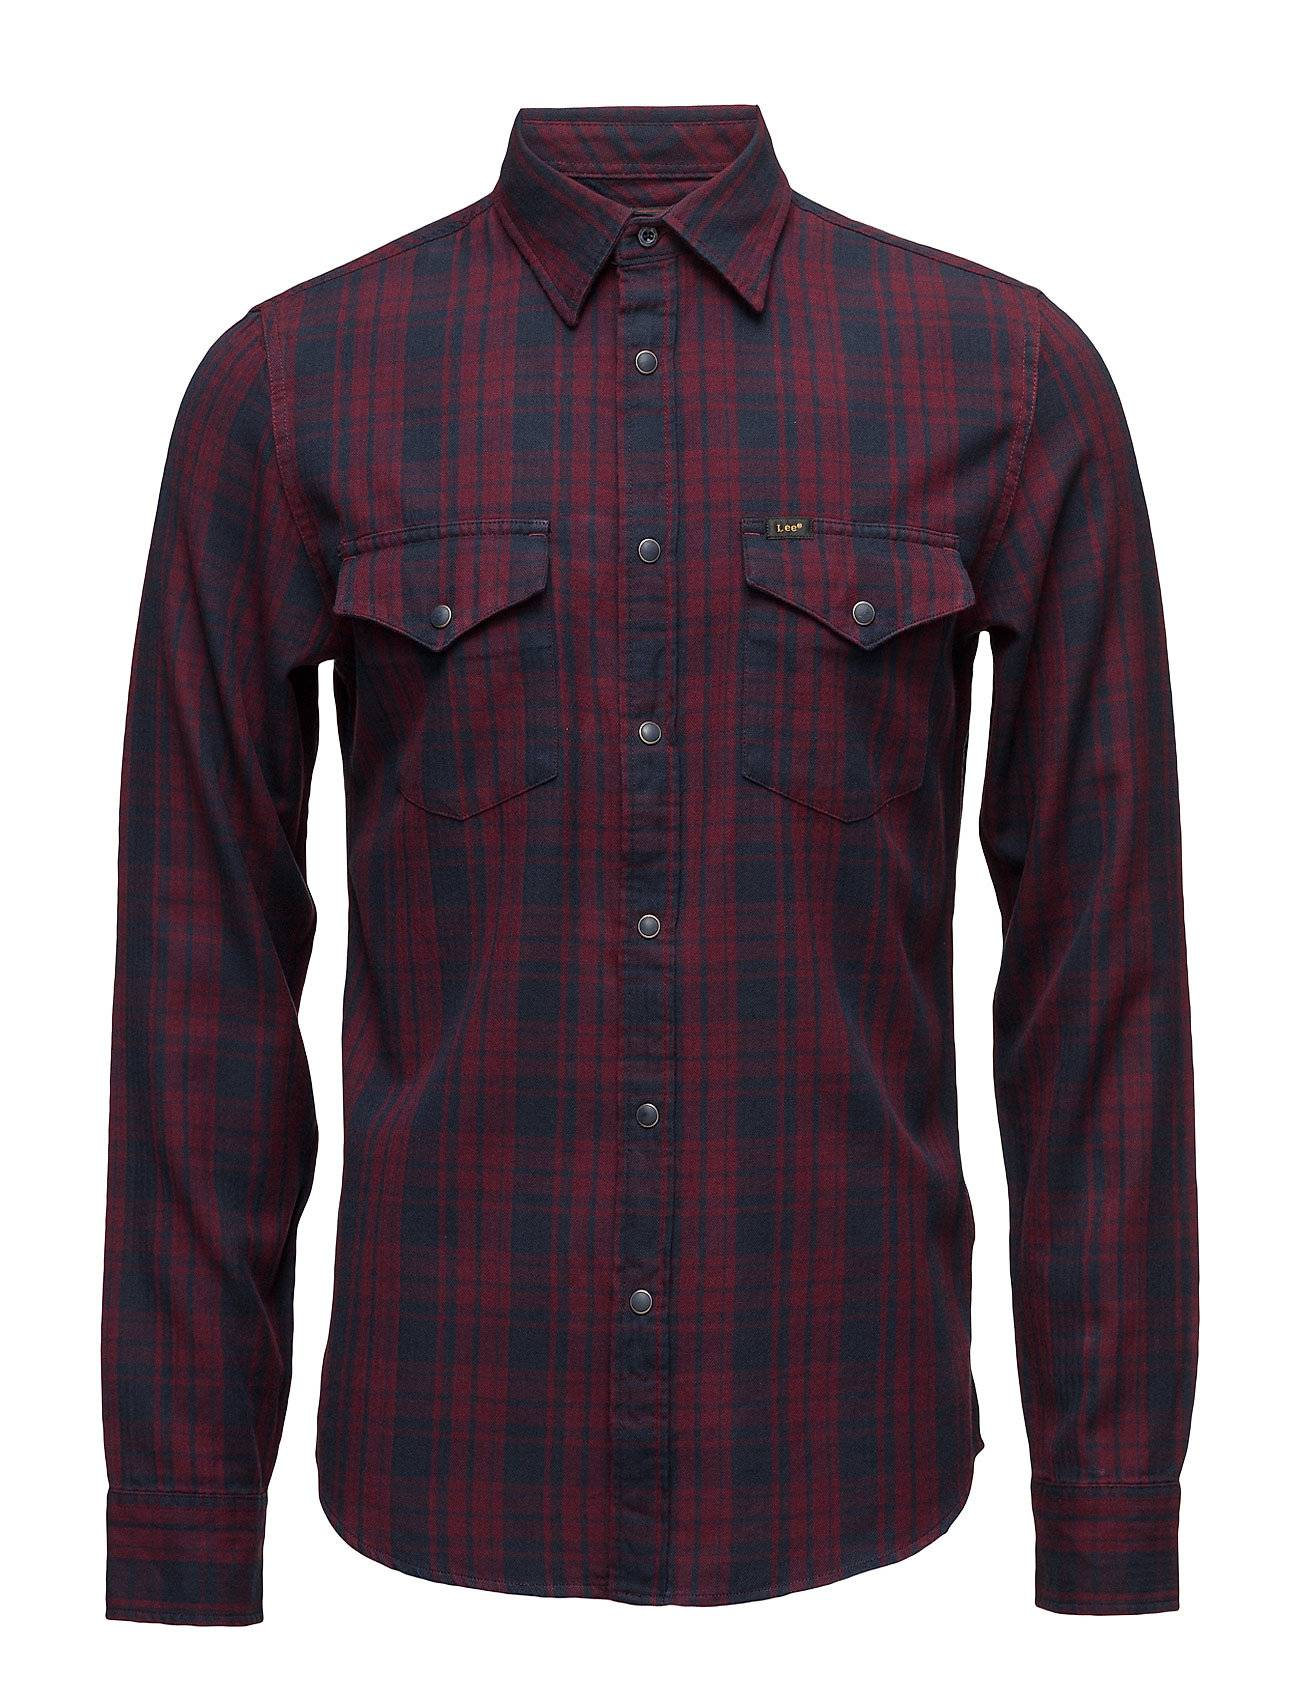 Lee Jeans Lee Western Shirt Tawny Port